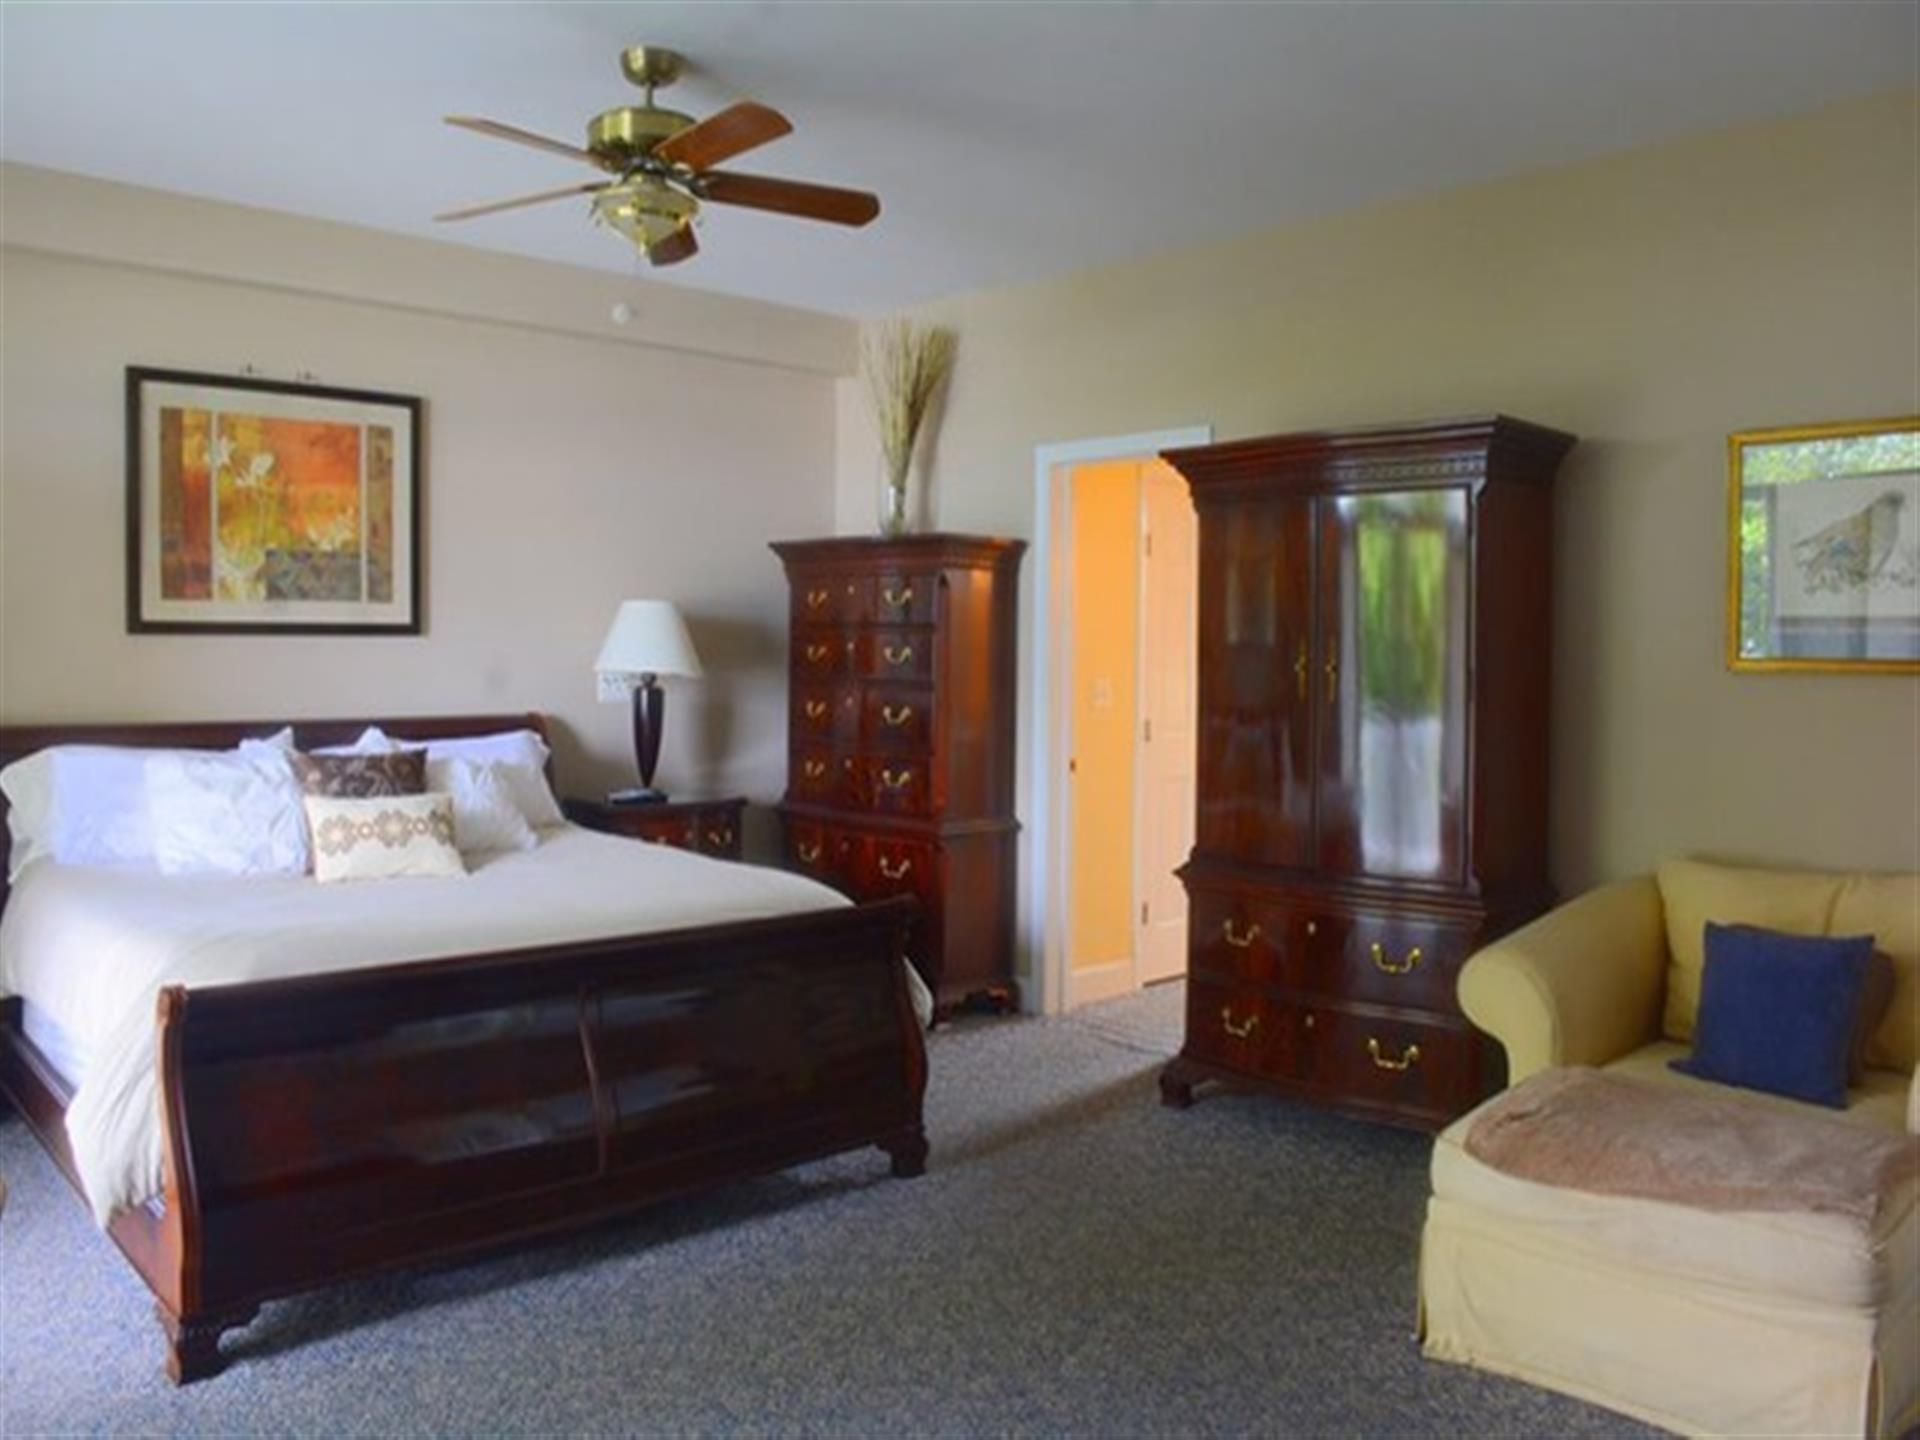 Suite one. Dark wood furniture and a king-size bed